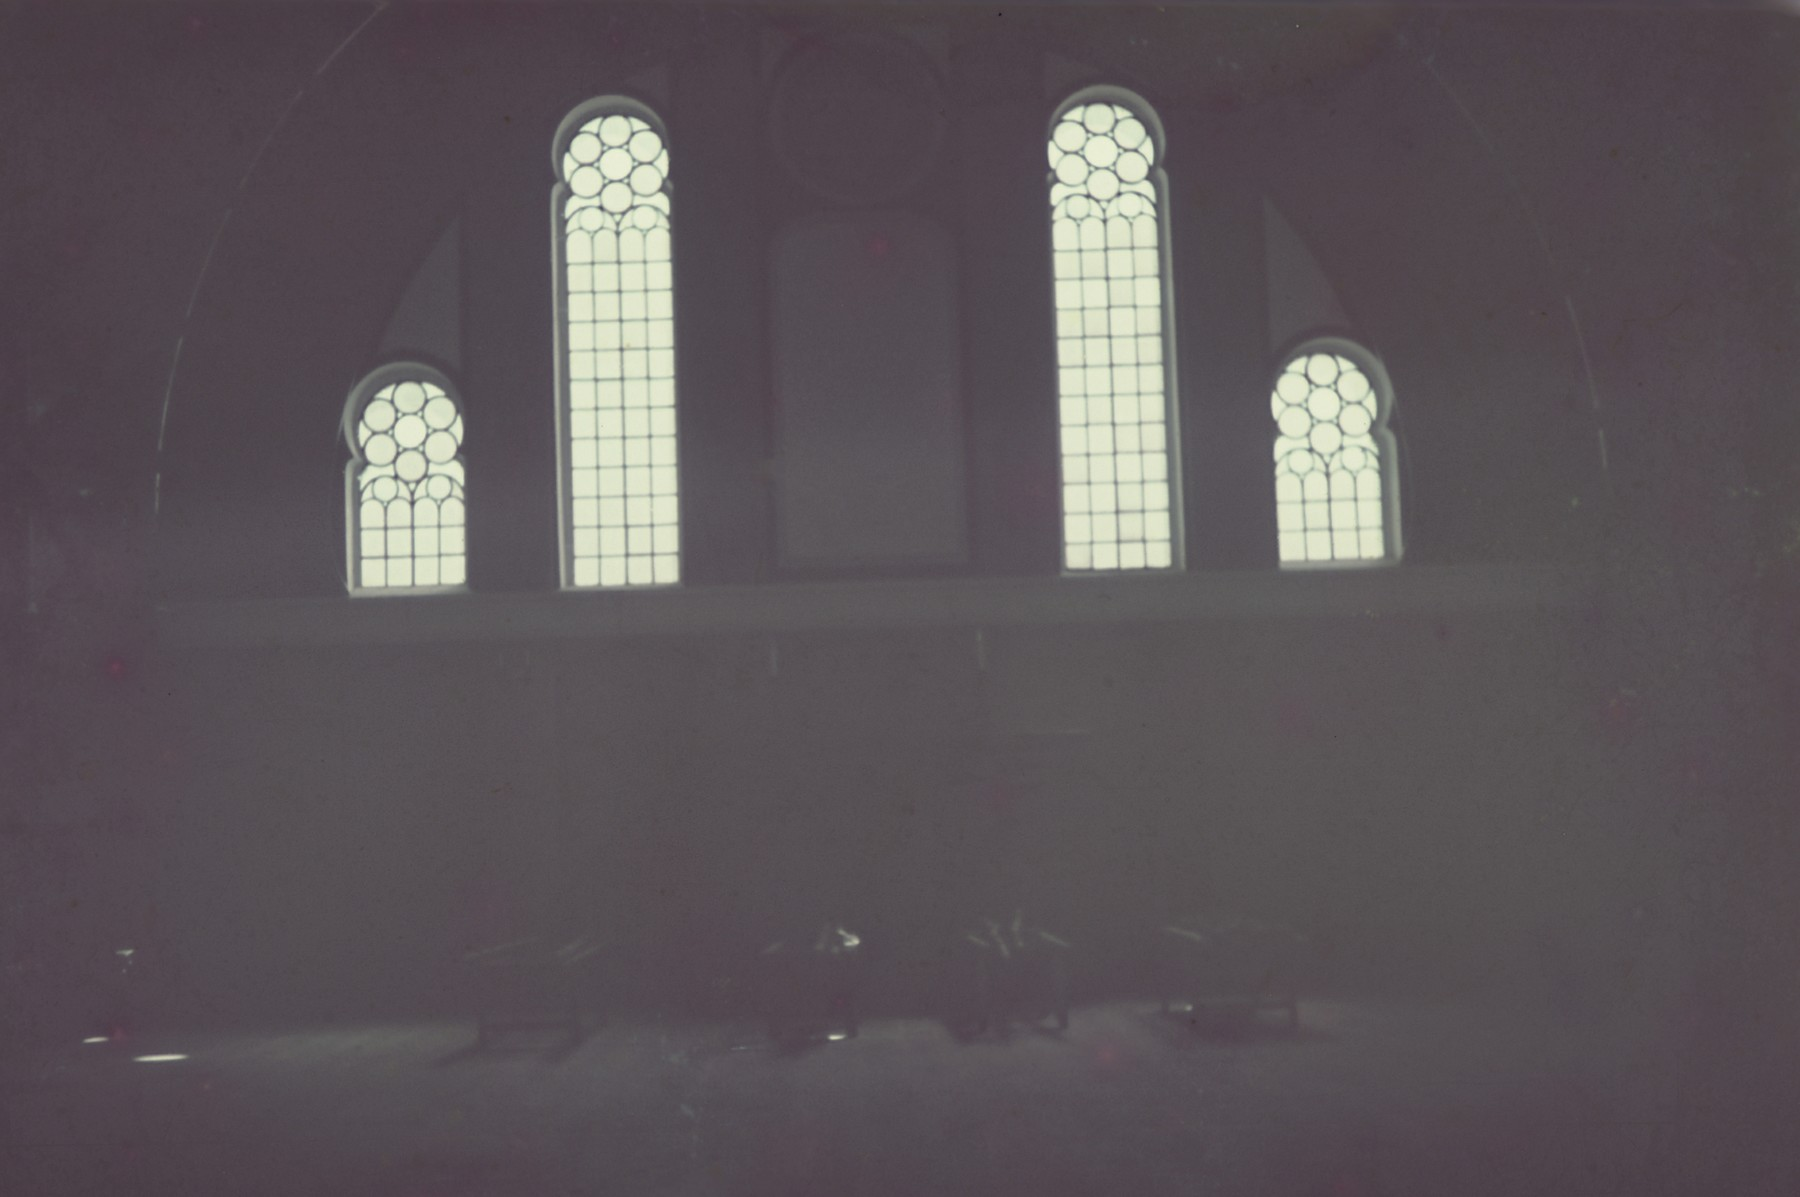 An interior view of either a chapel or a musoleum from the Genewein collection.